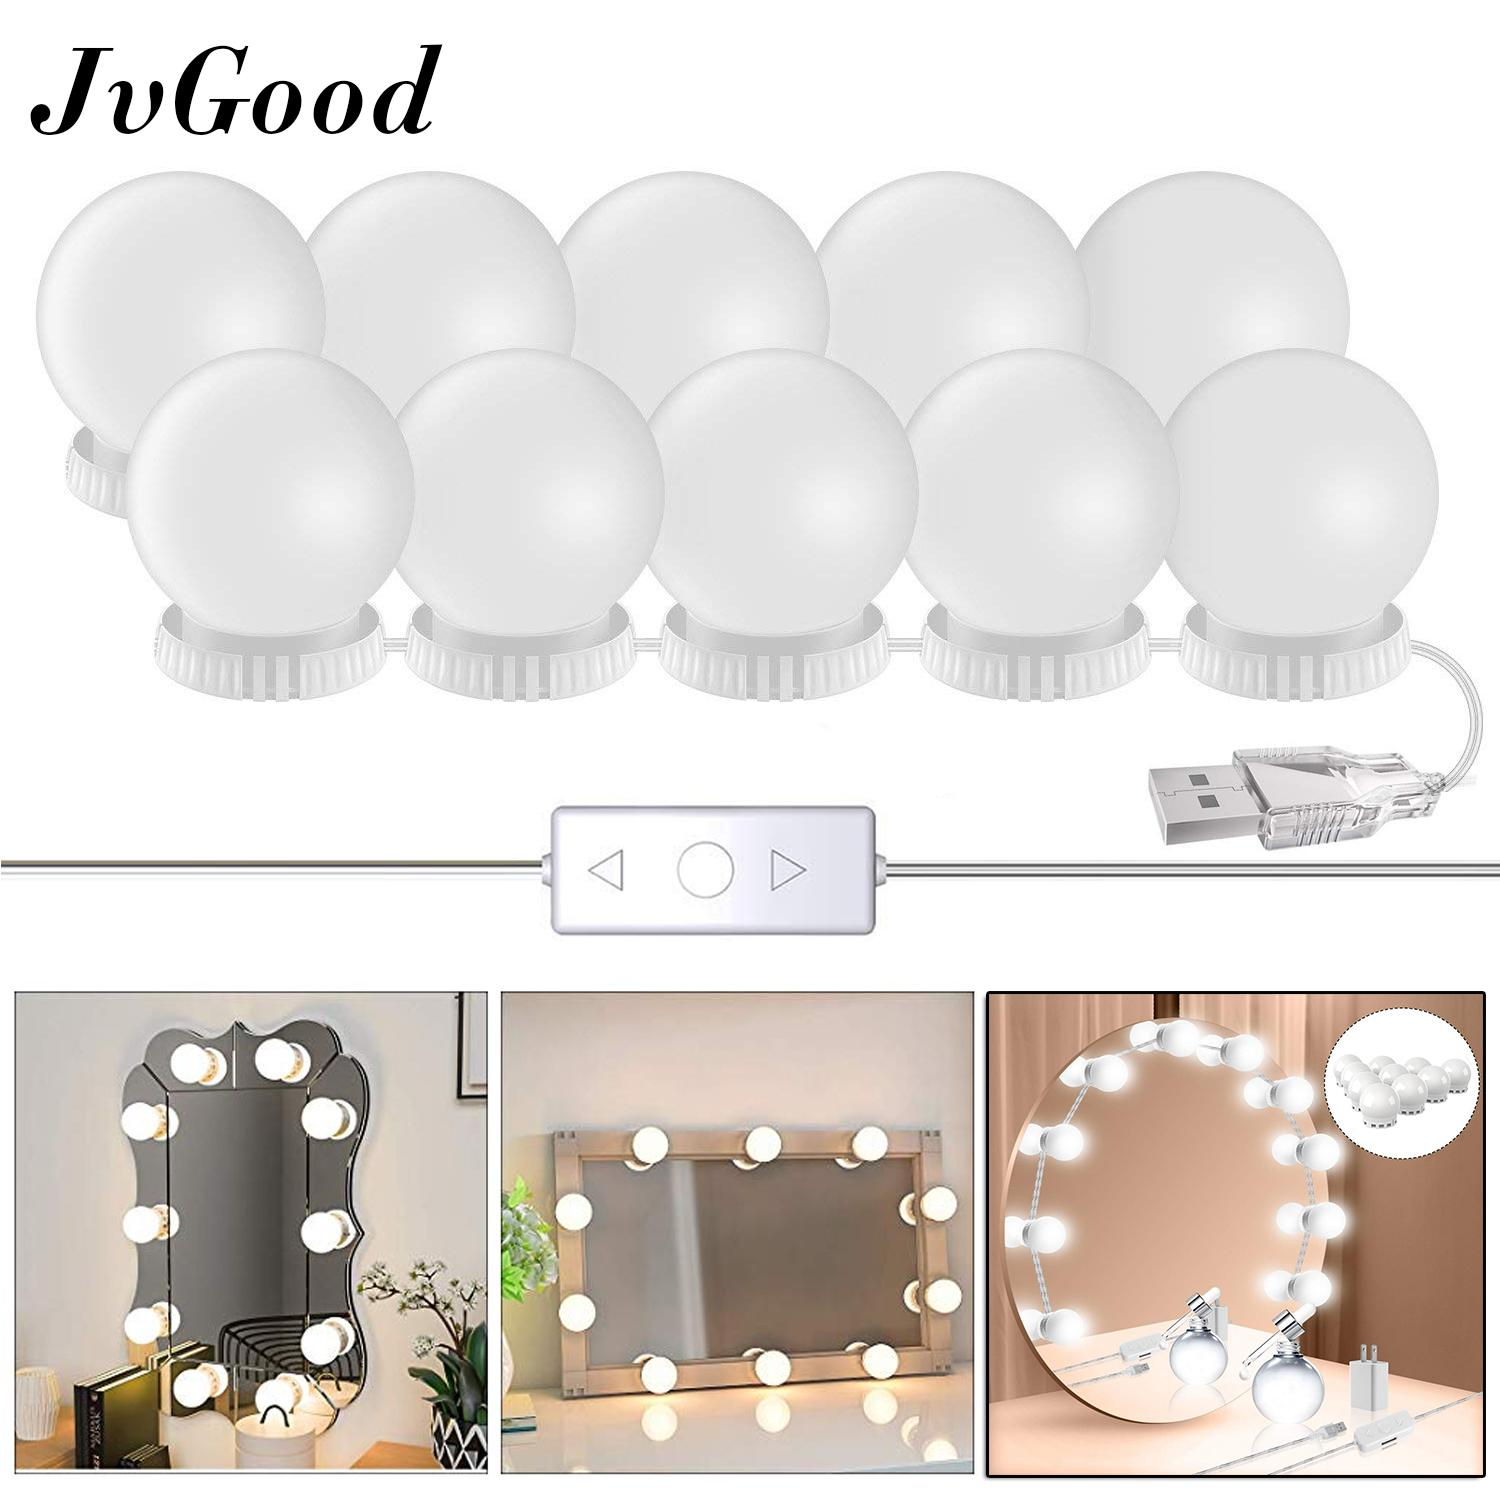 Jvgood led mirror lights make up vanity mirror light with 10 light bulbs for makeup dressing